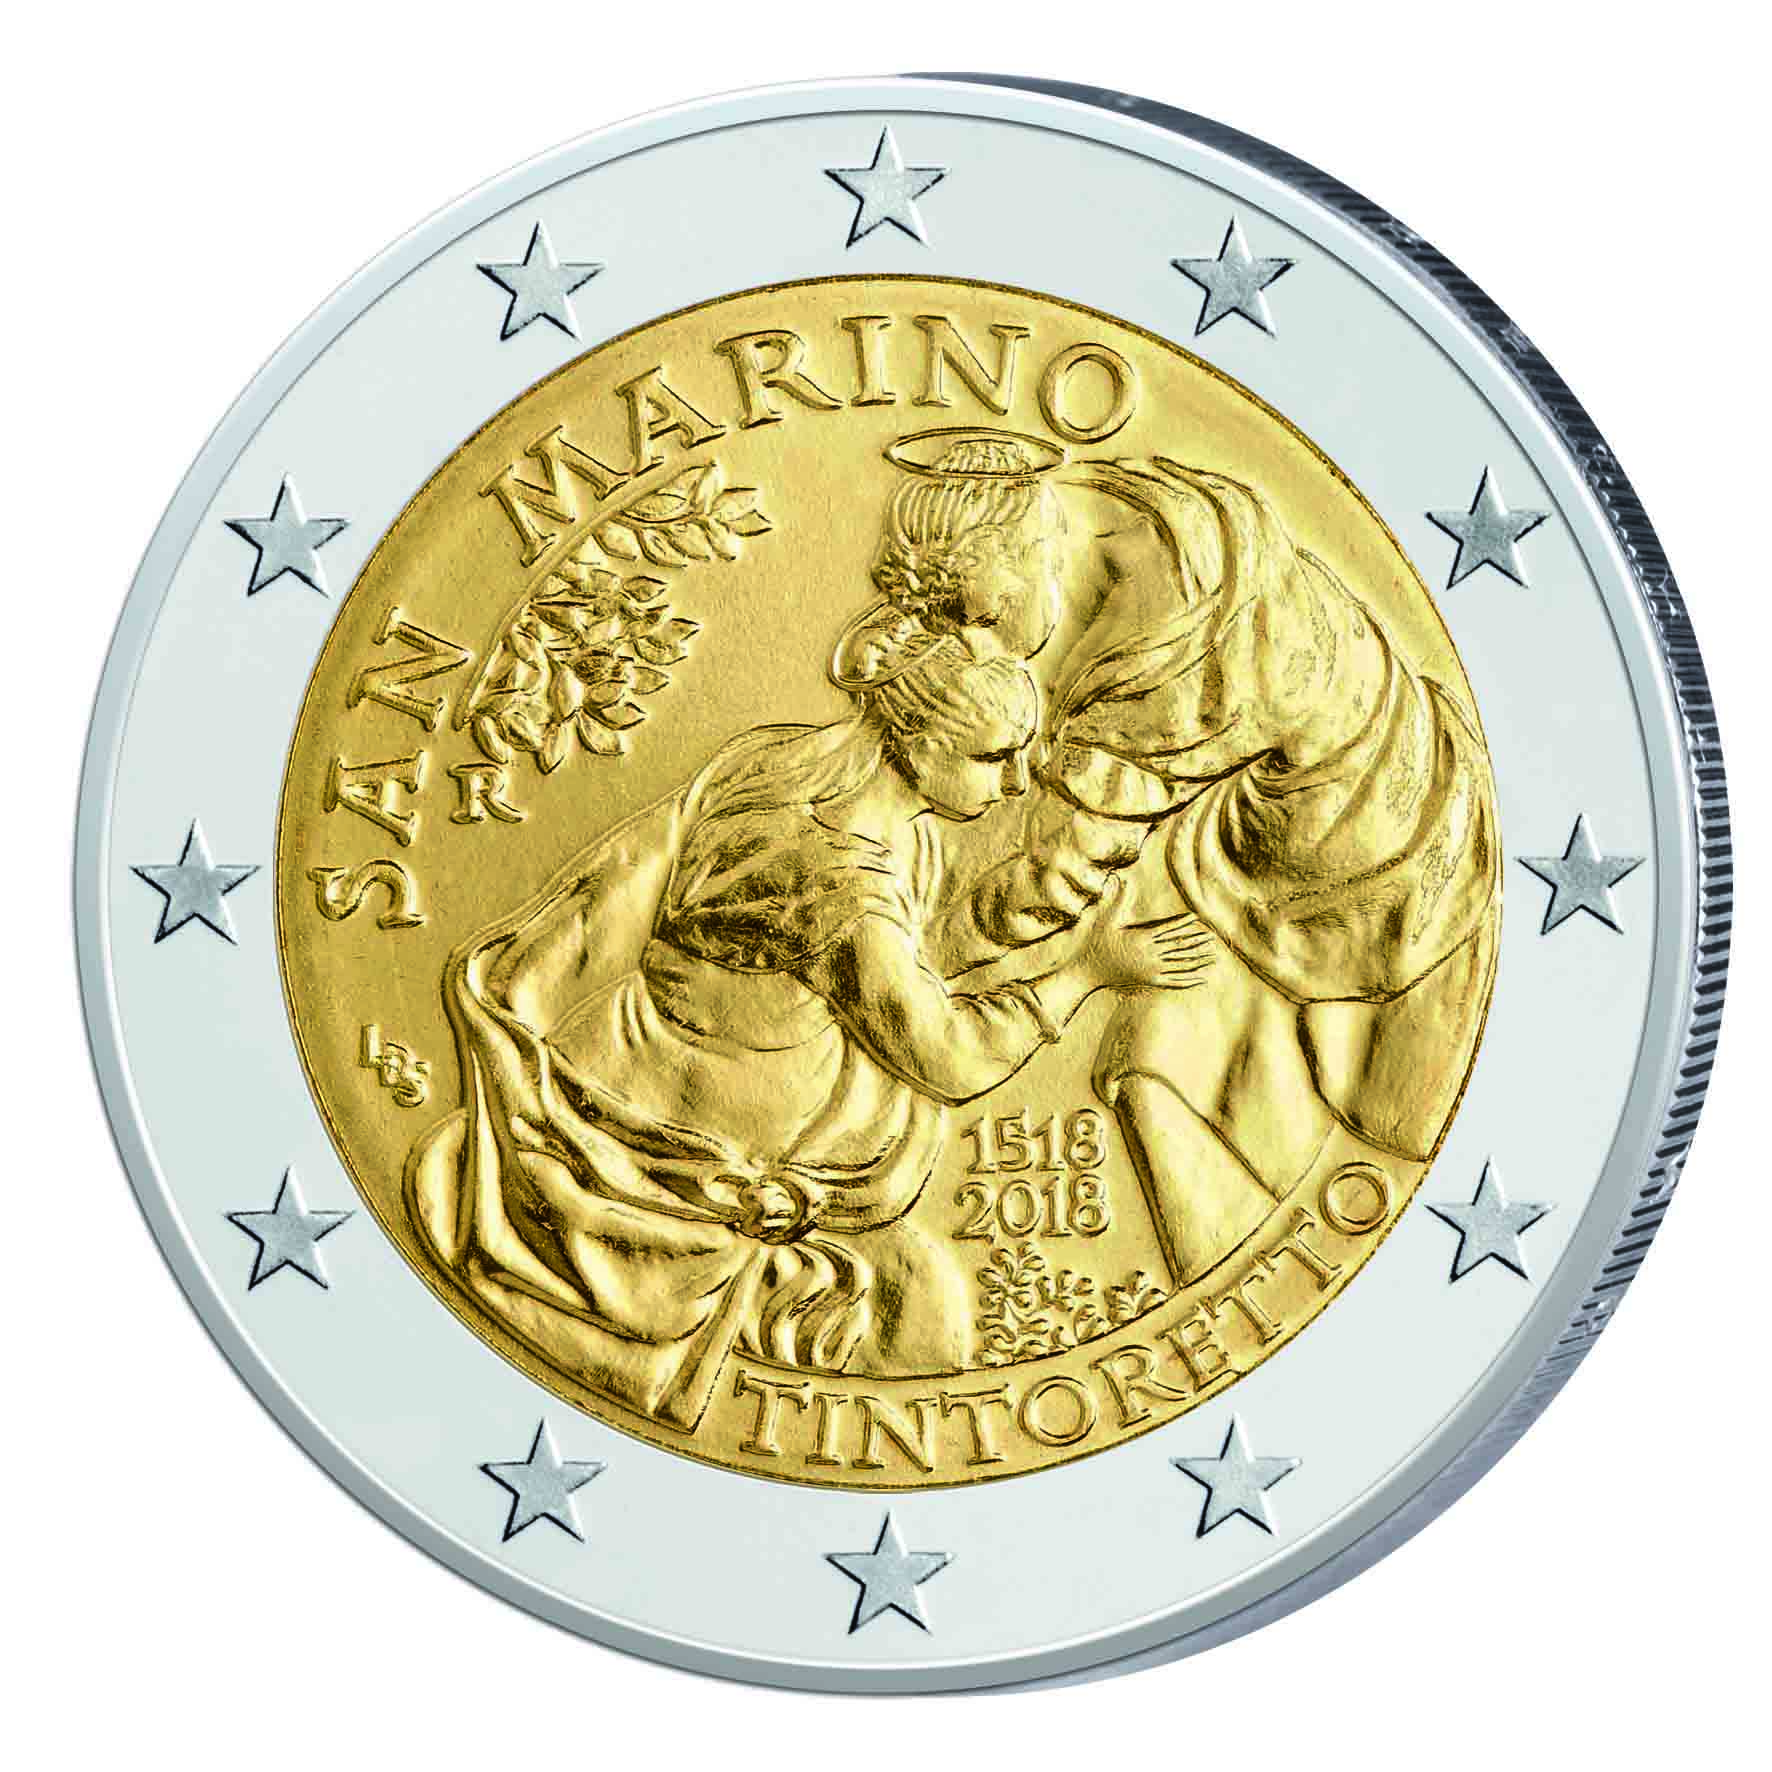 San Marino 2 Euro Coin 2018 Years Ins Token Price Chart Maker